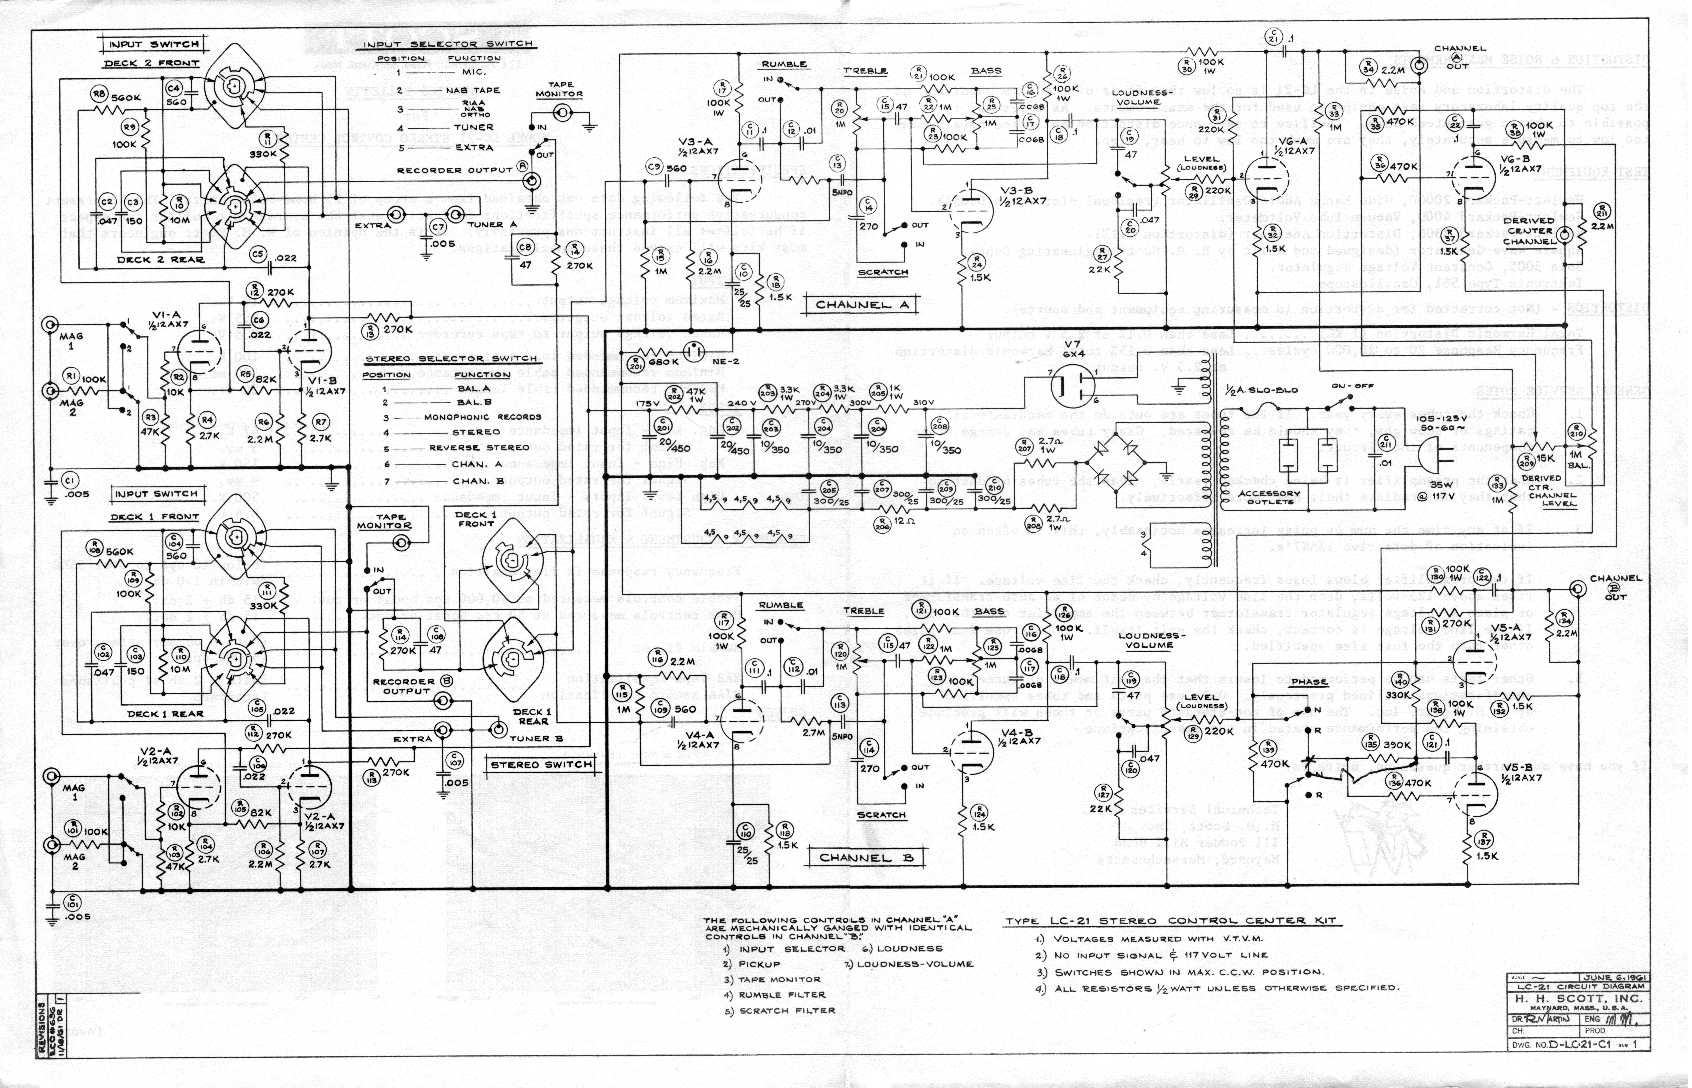 H Hott Tube Stereo Amp Pages